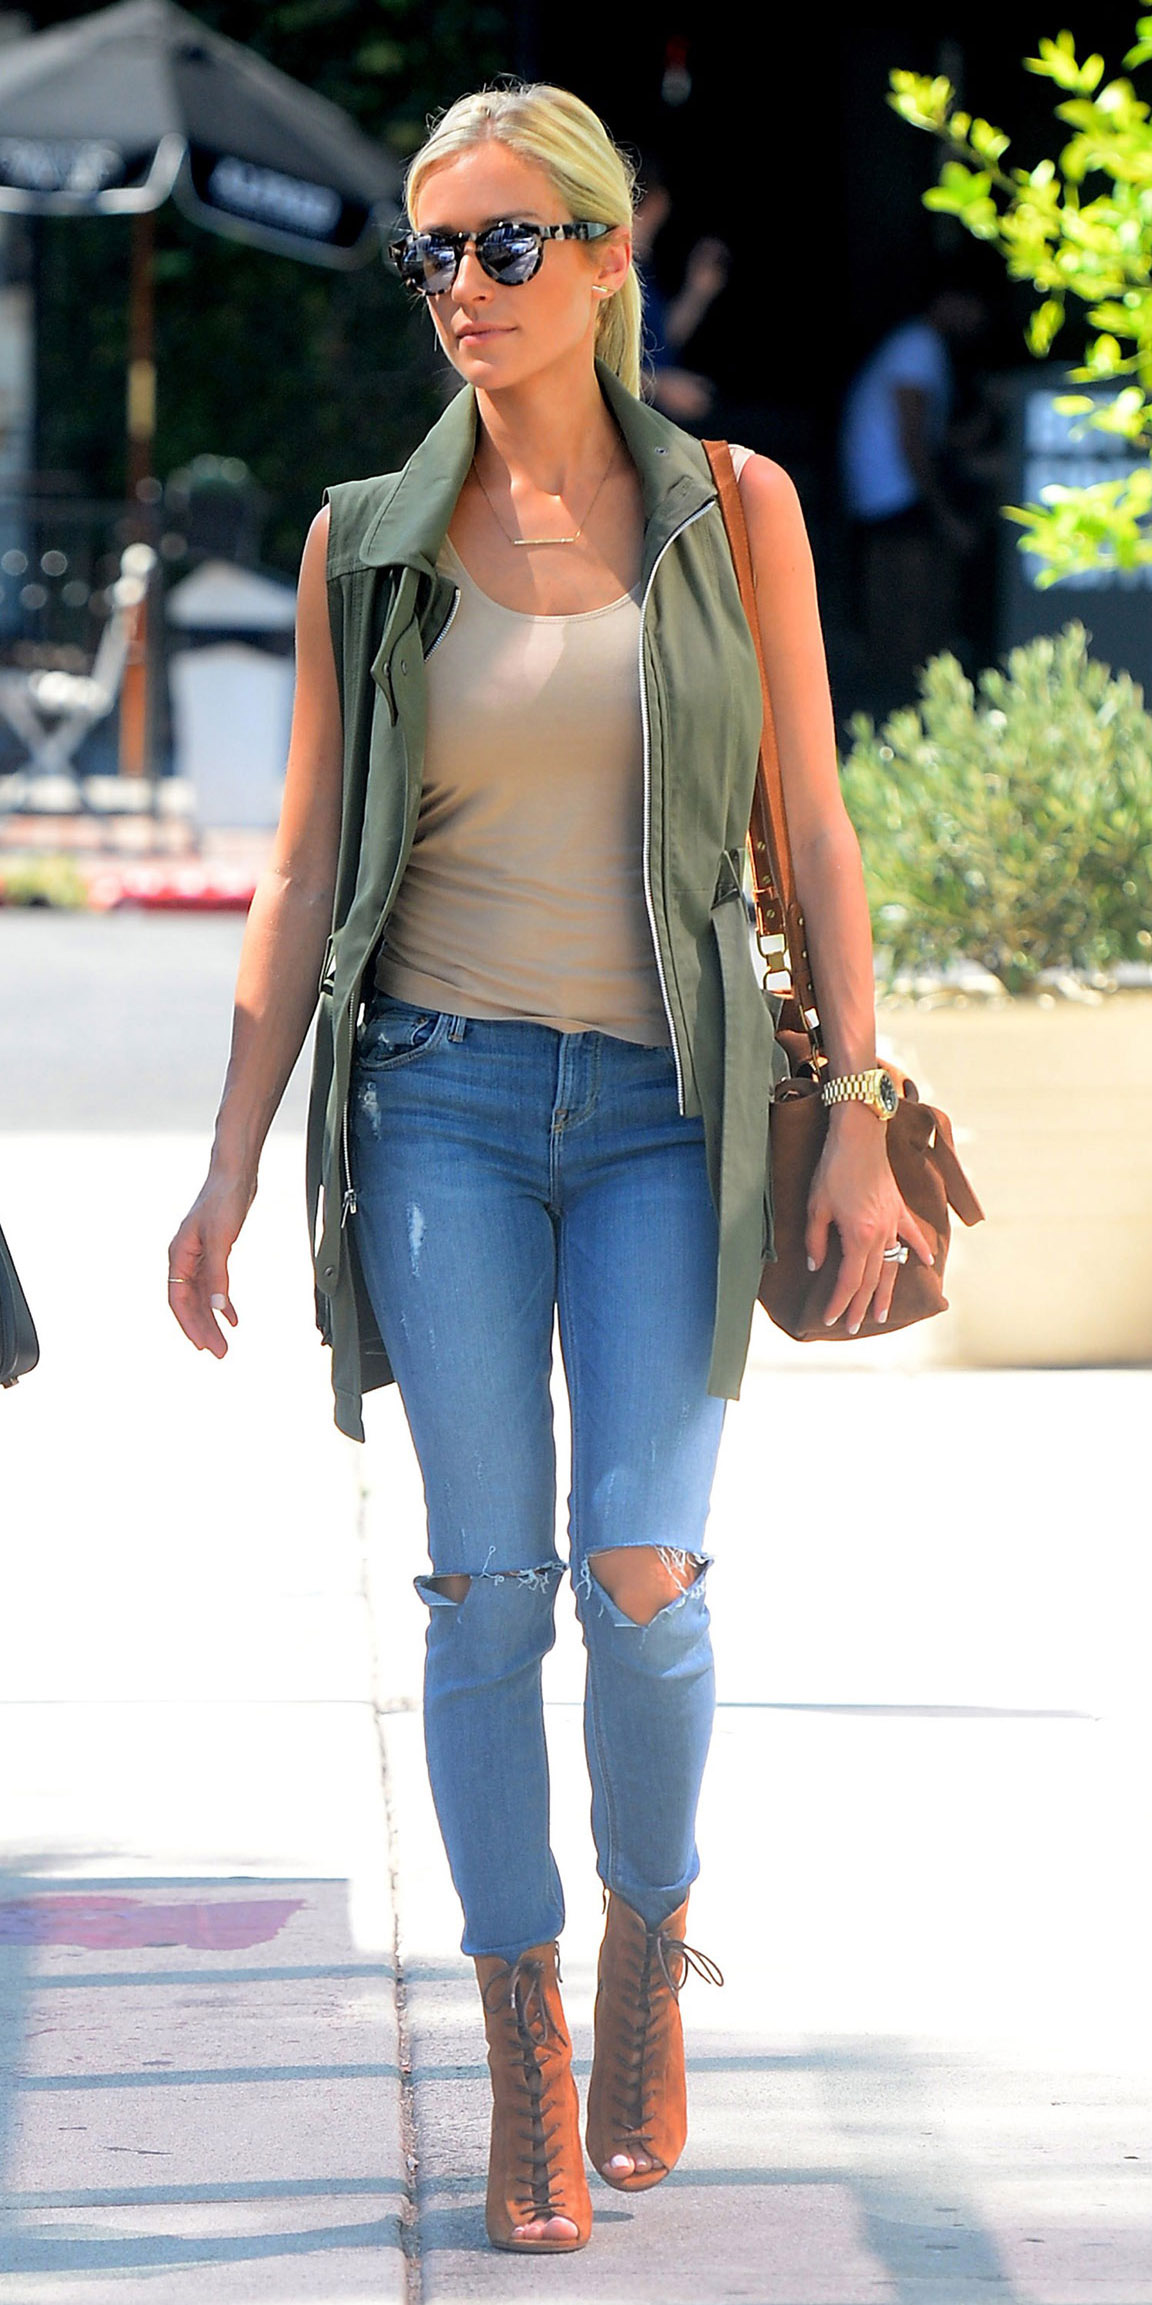 blue-light-skinny-jeans-tan-tank-cognac-bag-blonde-pony-sun-cognac-shoe-sandalh-green-olive-vest-utility-trench-kristincavallari-spring-summer-lunch.jpg